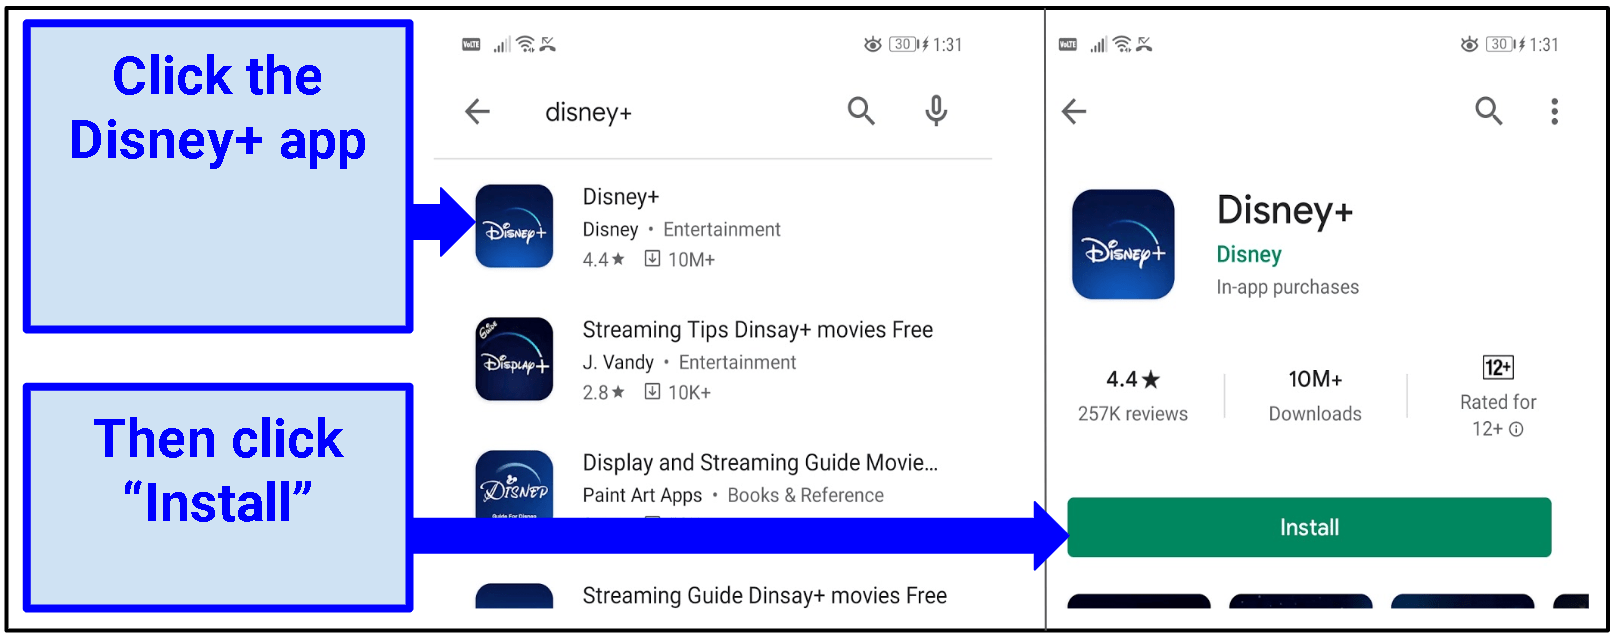 A screenshot of the Google Play Store with an arrow pointing to the Disney+ app's installation button.